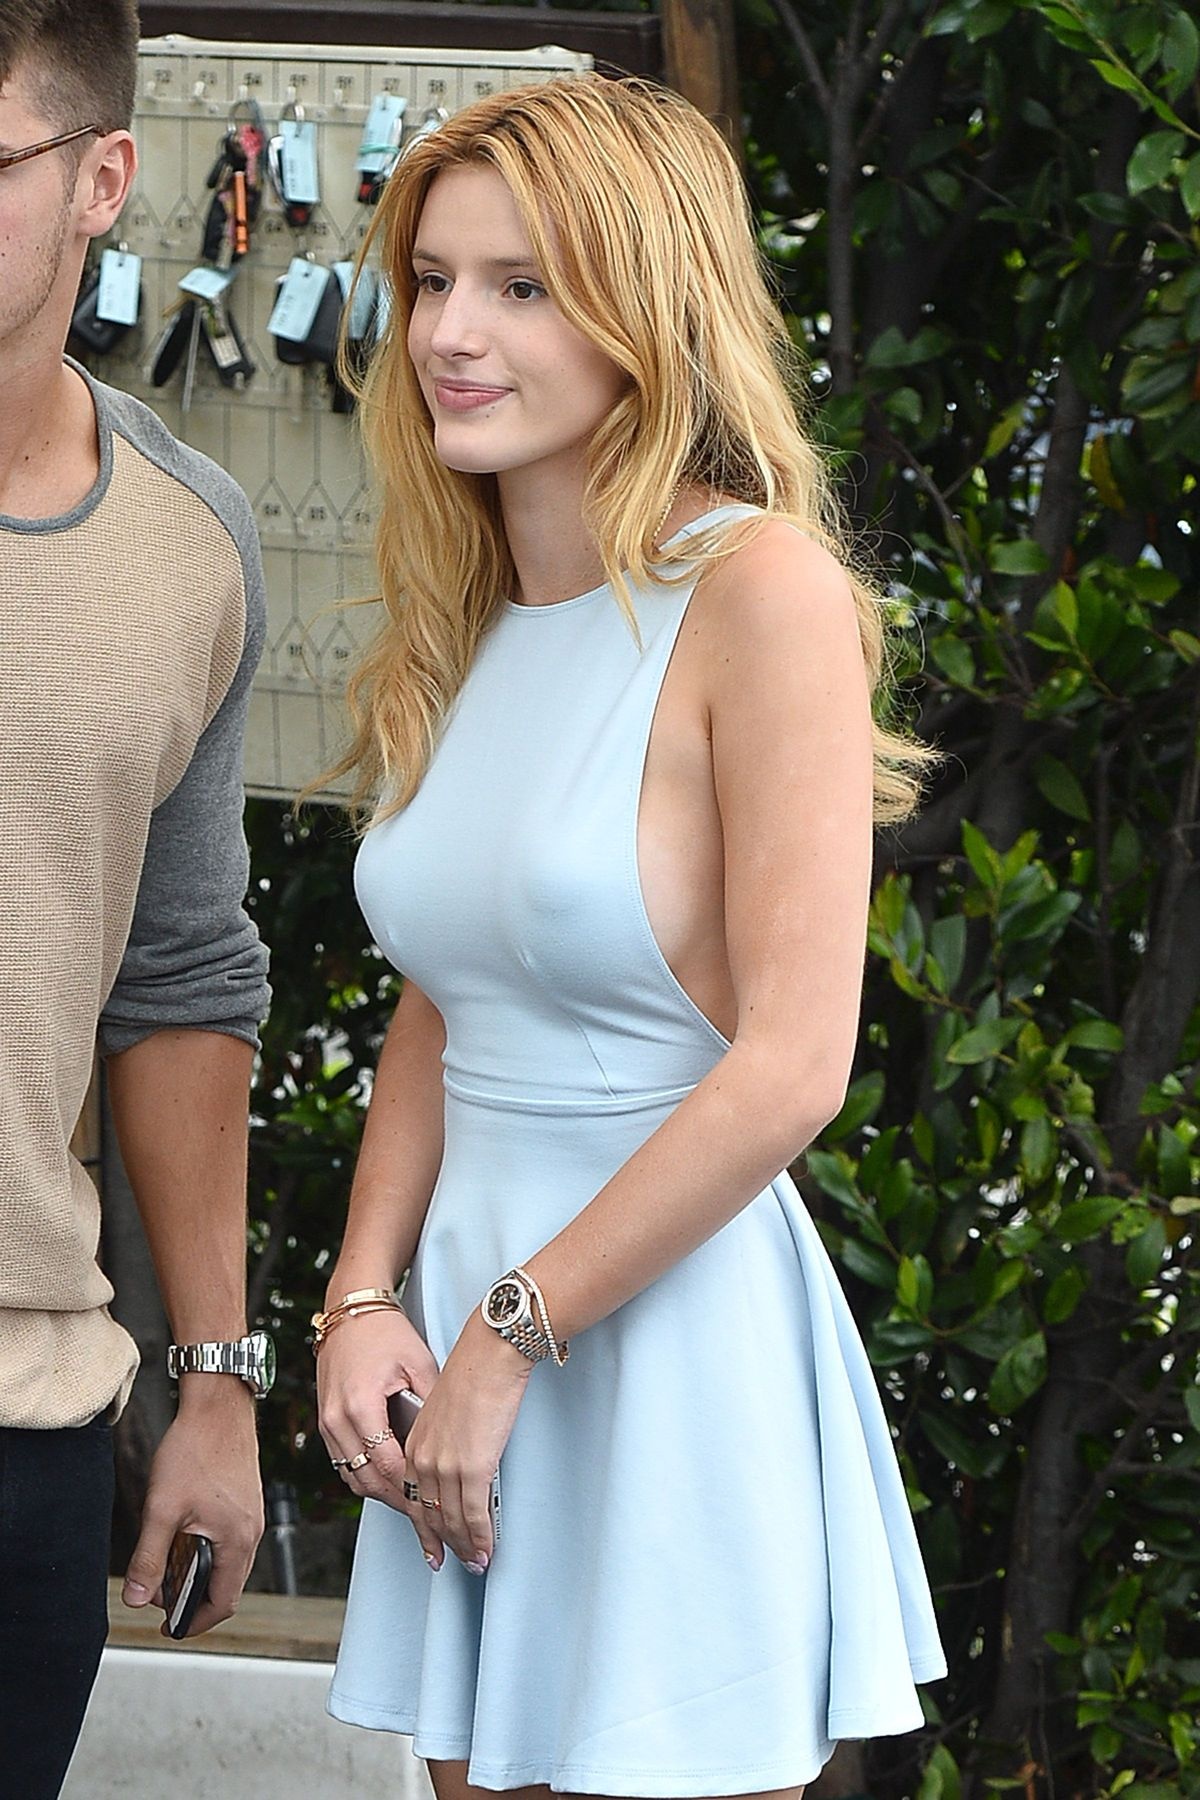 Bella Thorne Braless 41 TheFappening.nu